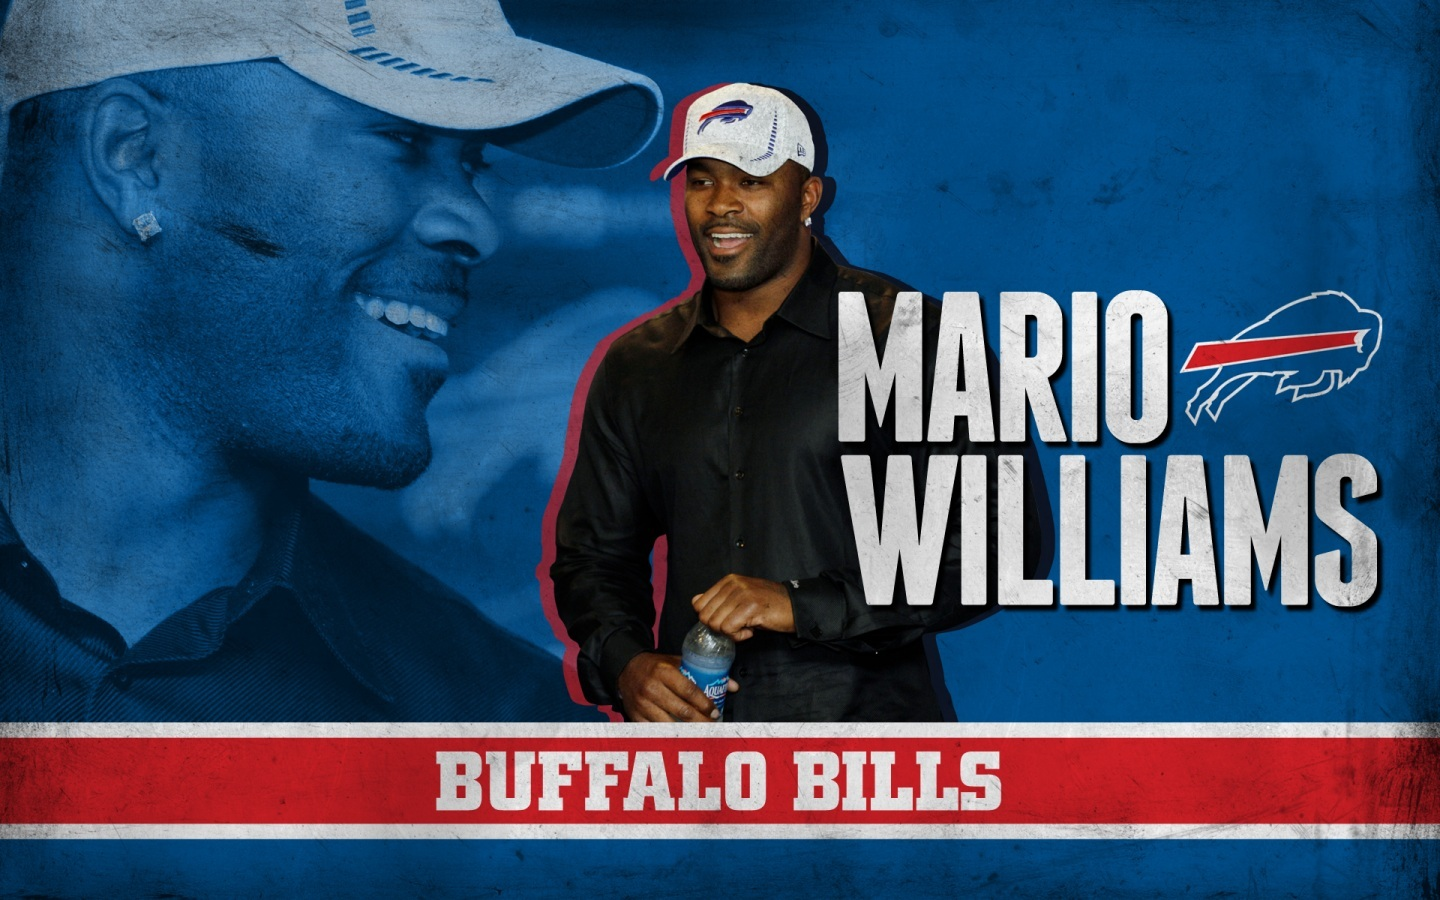 Buffalo Bills Wallpaper Buffalo Bills Wallpaper And Paint Border 1440x900